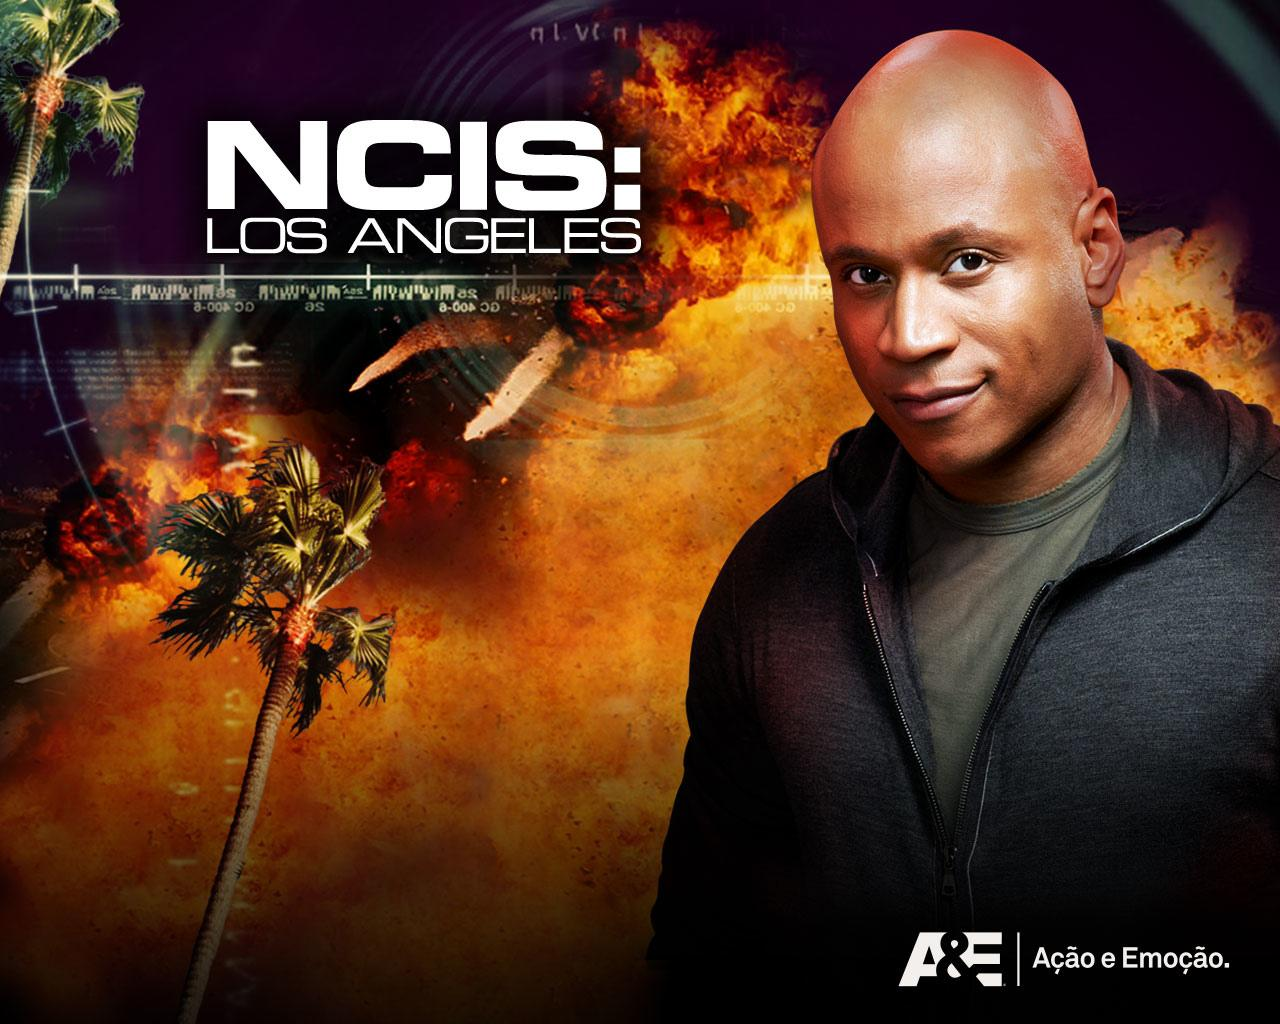 NCIS Los Angeles wallpapers HD quality